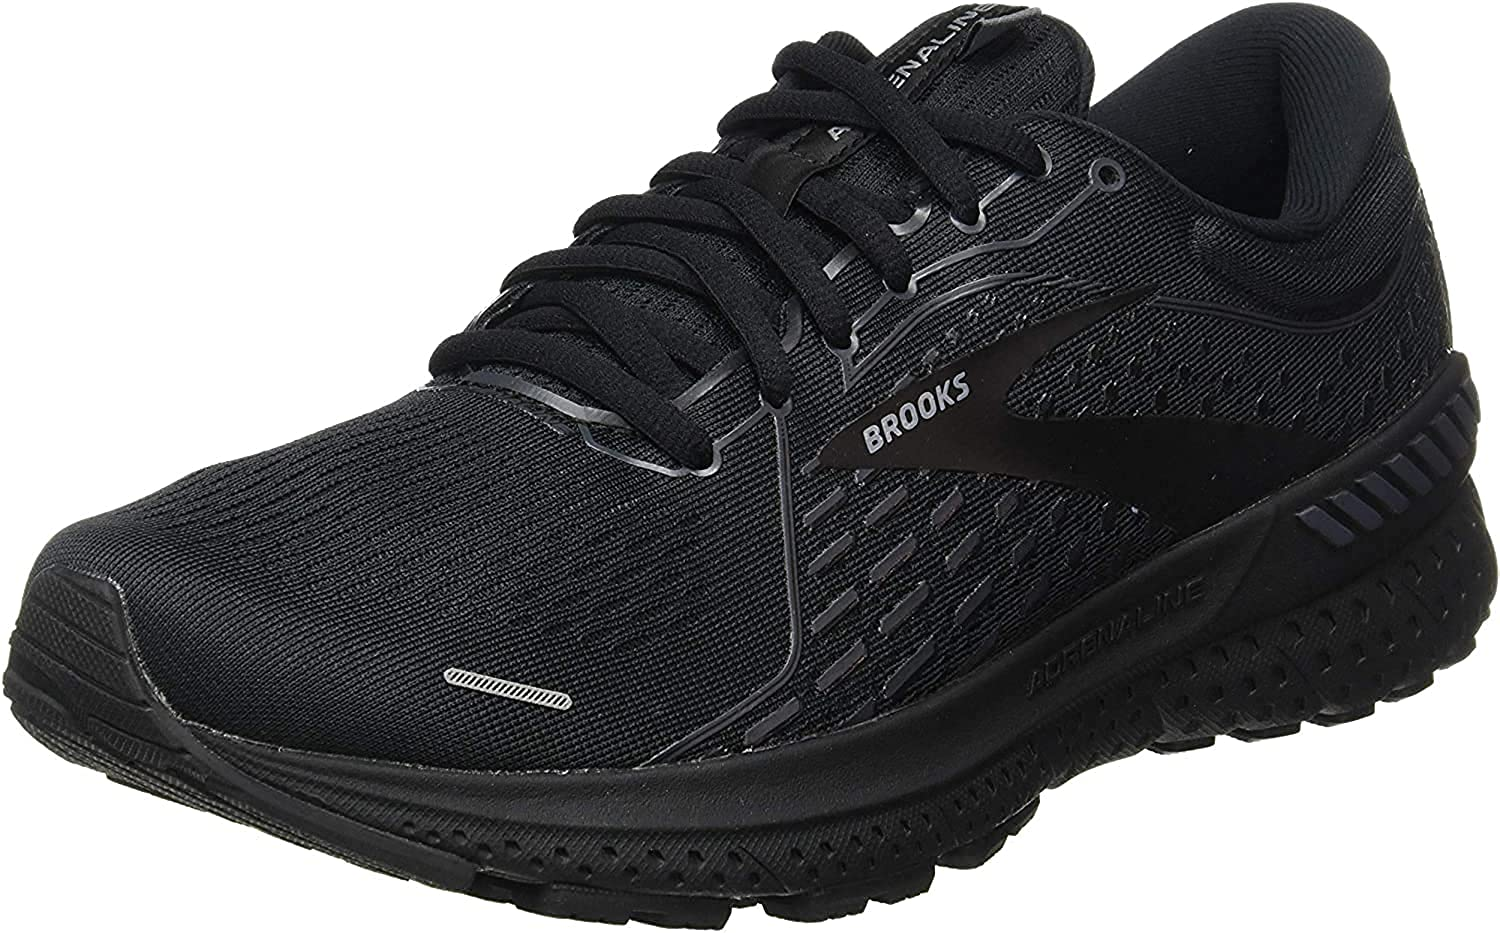 Brooks Men's Adrenaline GTS Daily bargain sale Limited time trial price 21